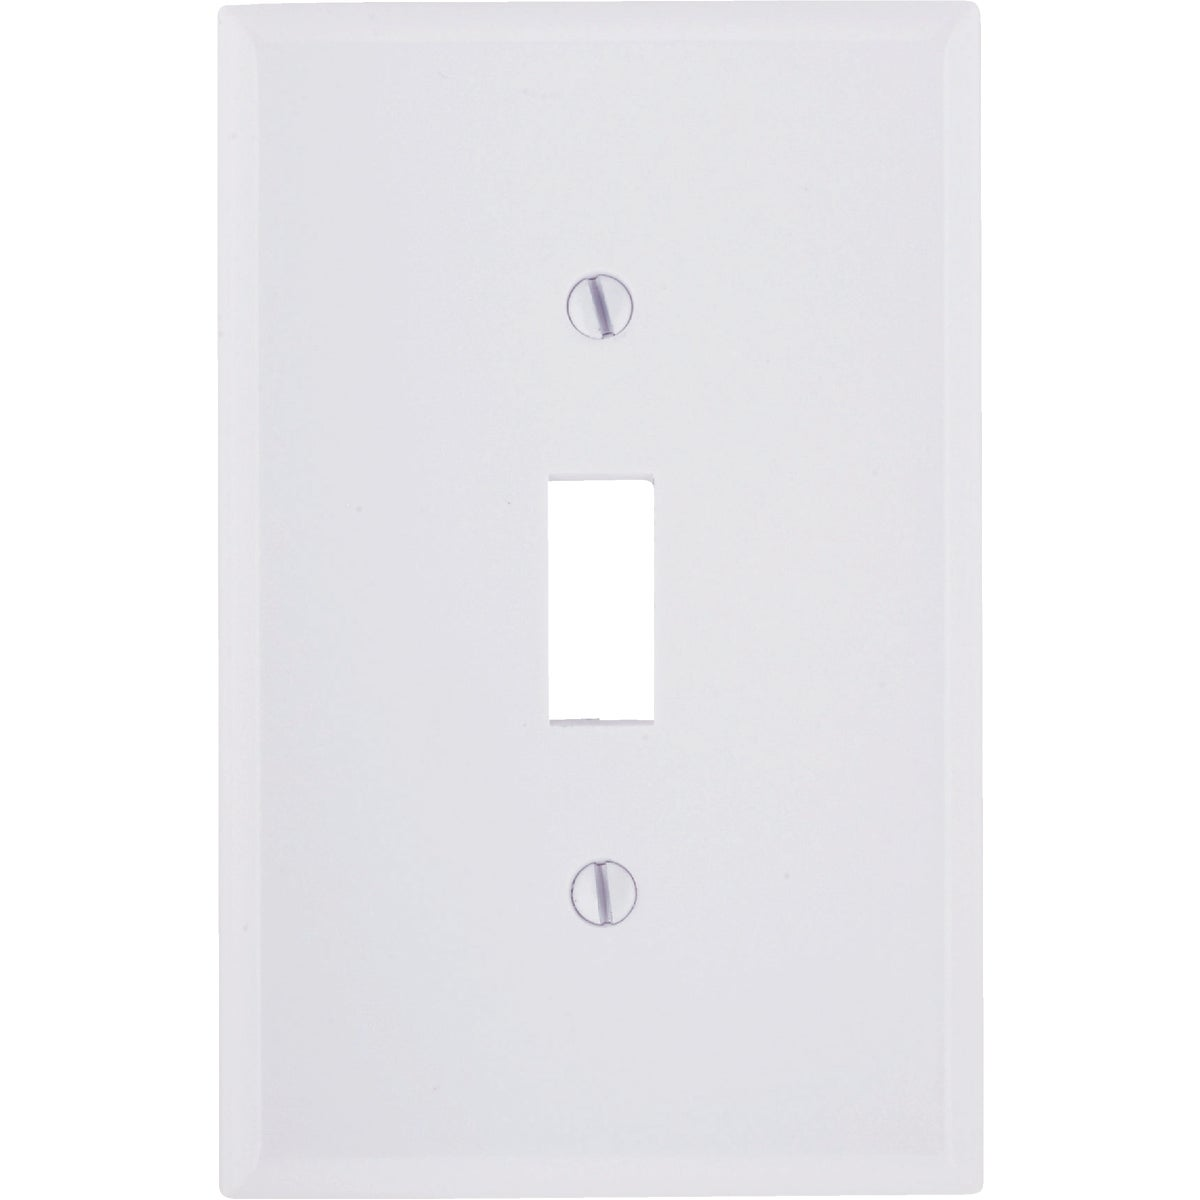 WHT 1-TOGGLE WALL PLATE - 021-80501-W by Leviton Mfg Co